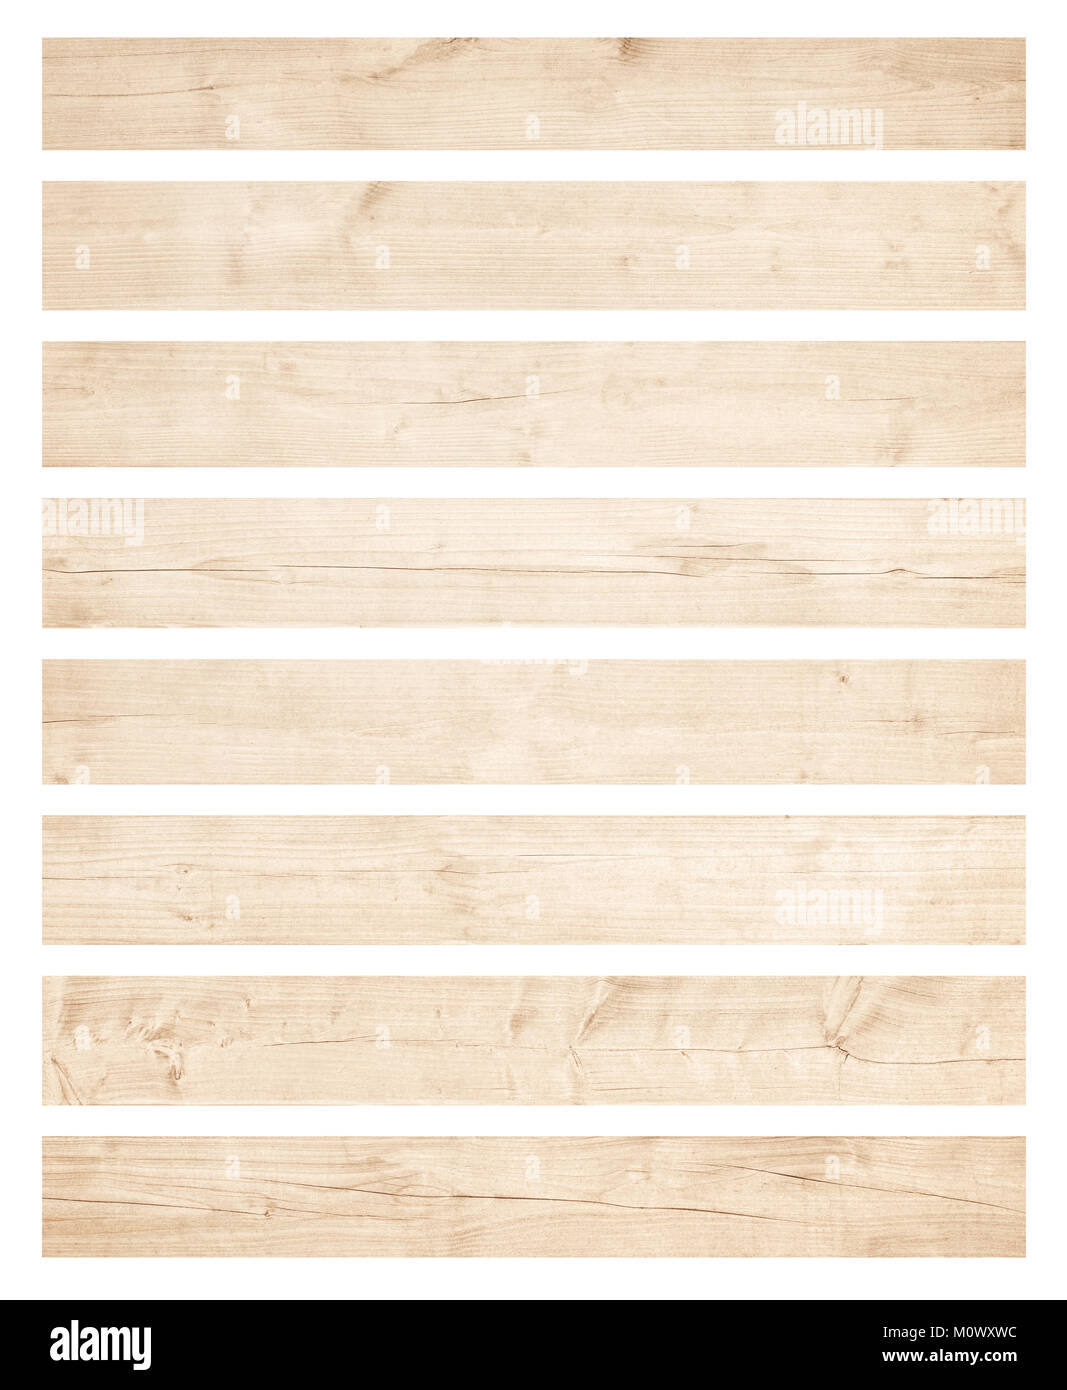 Old brown wooden planks isolated on white background - Stock Image